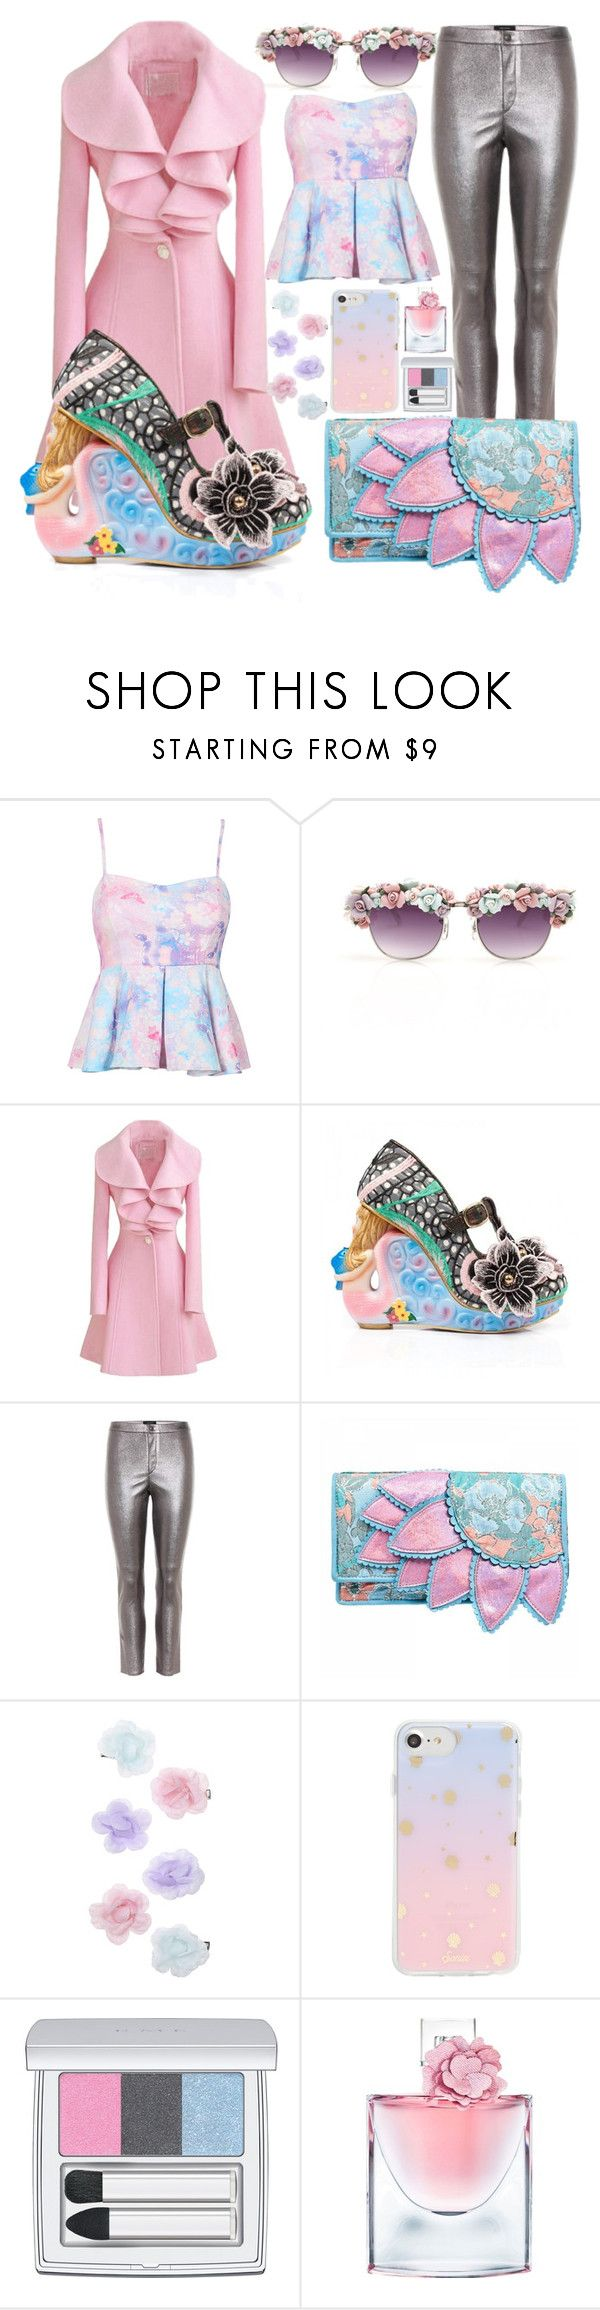 """Edgy Pastel L👀k"" by sanya-styleup ❤ liked on Polyvore featuring Irregular Choice, Isabel Marant, Monsoon, Sonix, RMK and Lancôme"